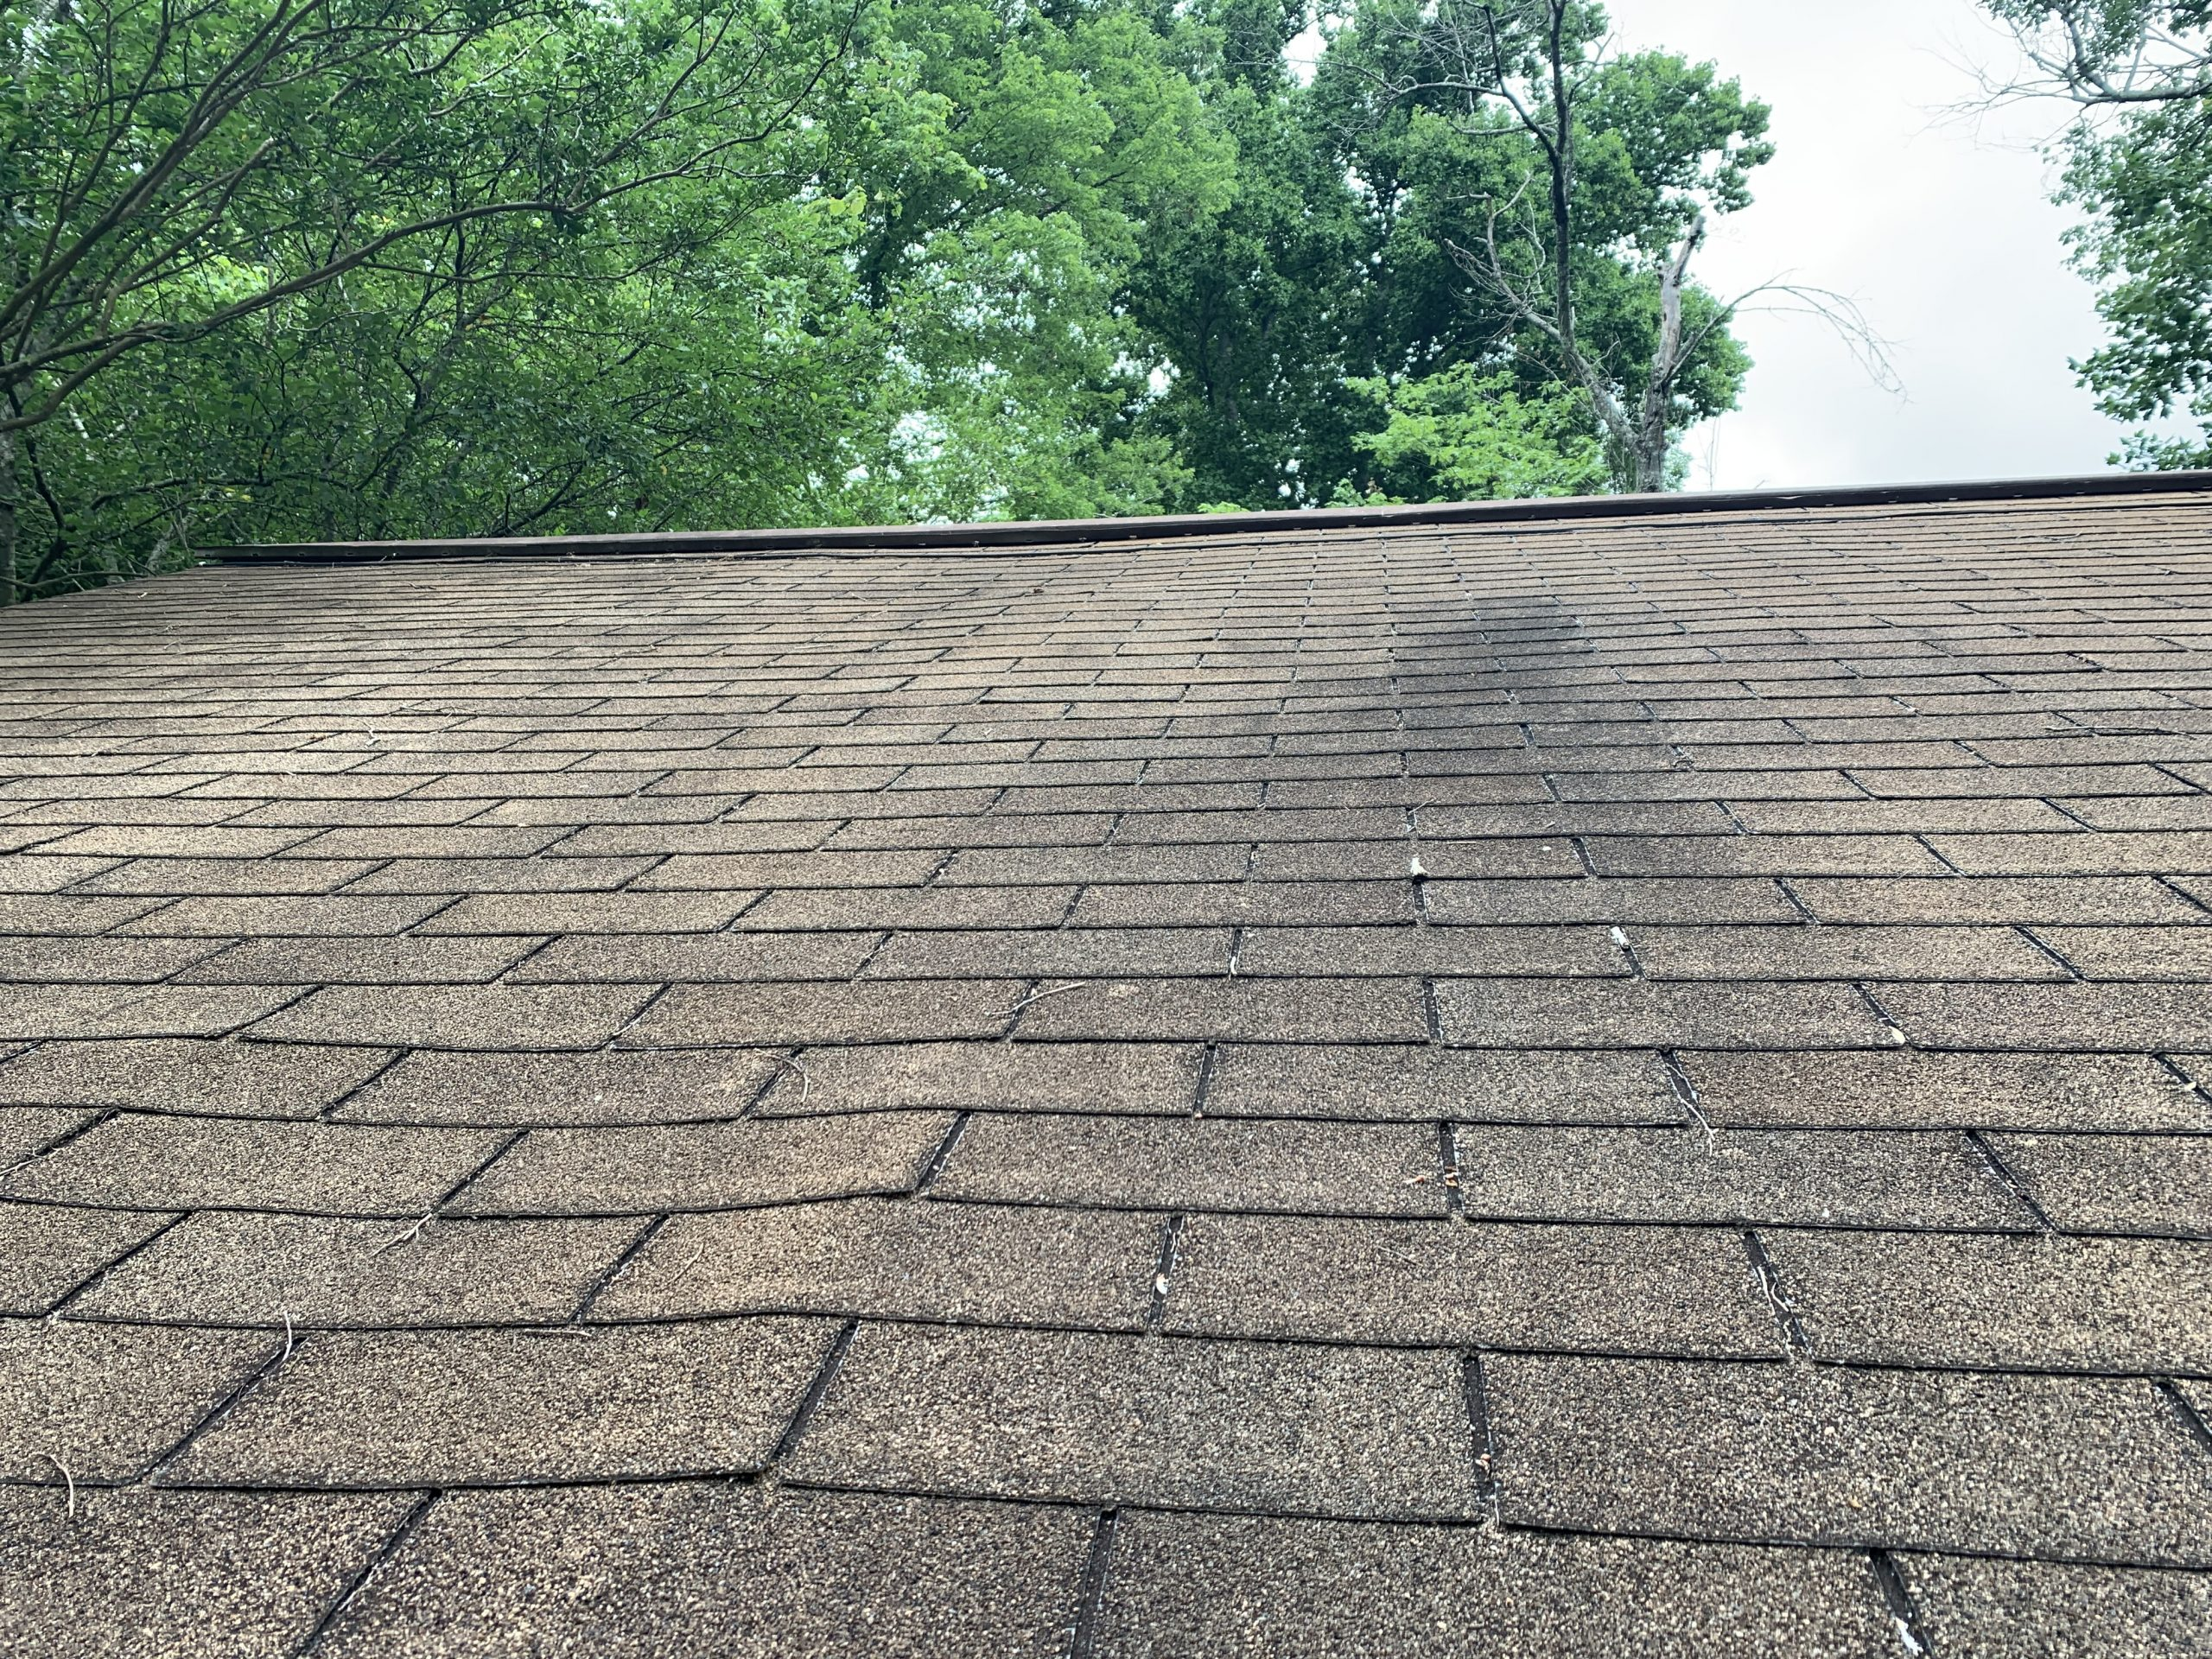 this is a picture showing how bad of condition that the old shingle roof is in